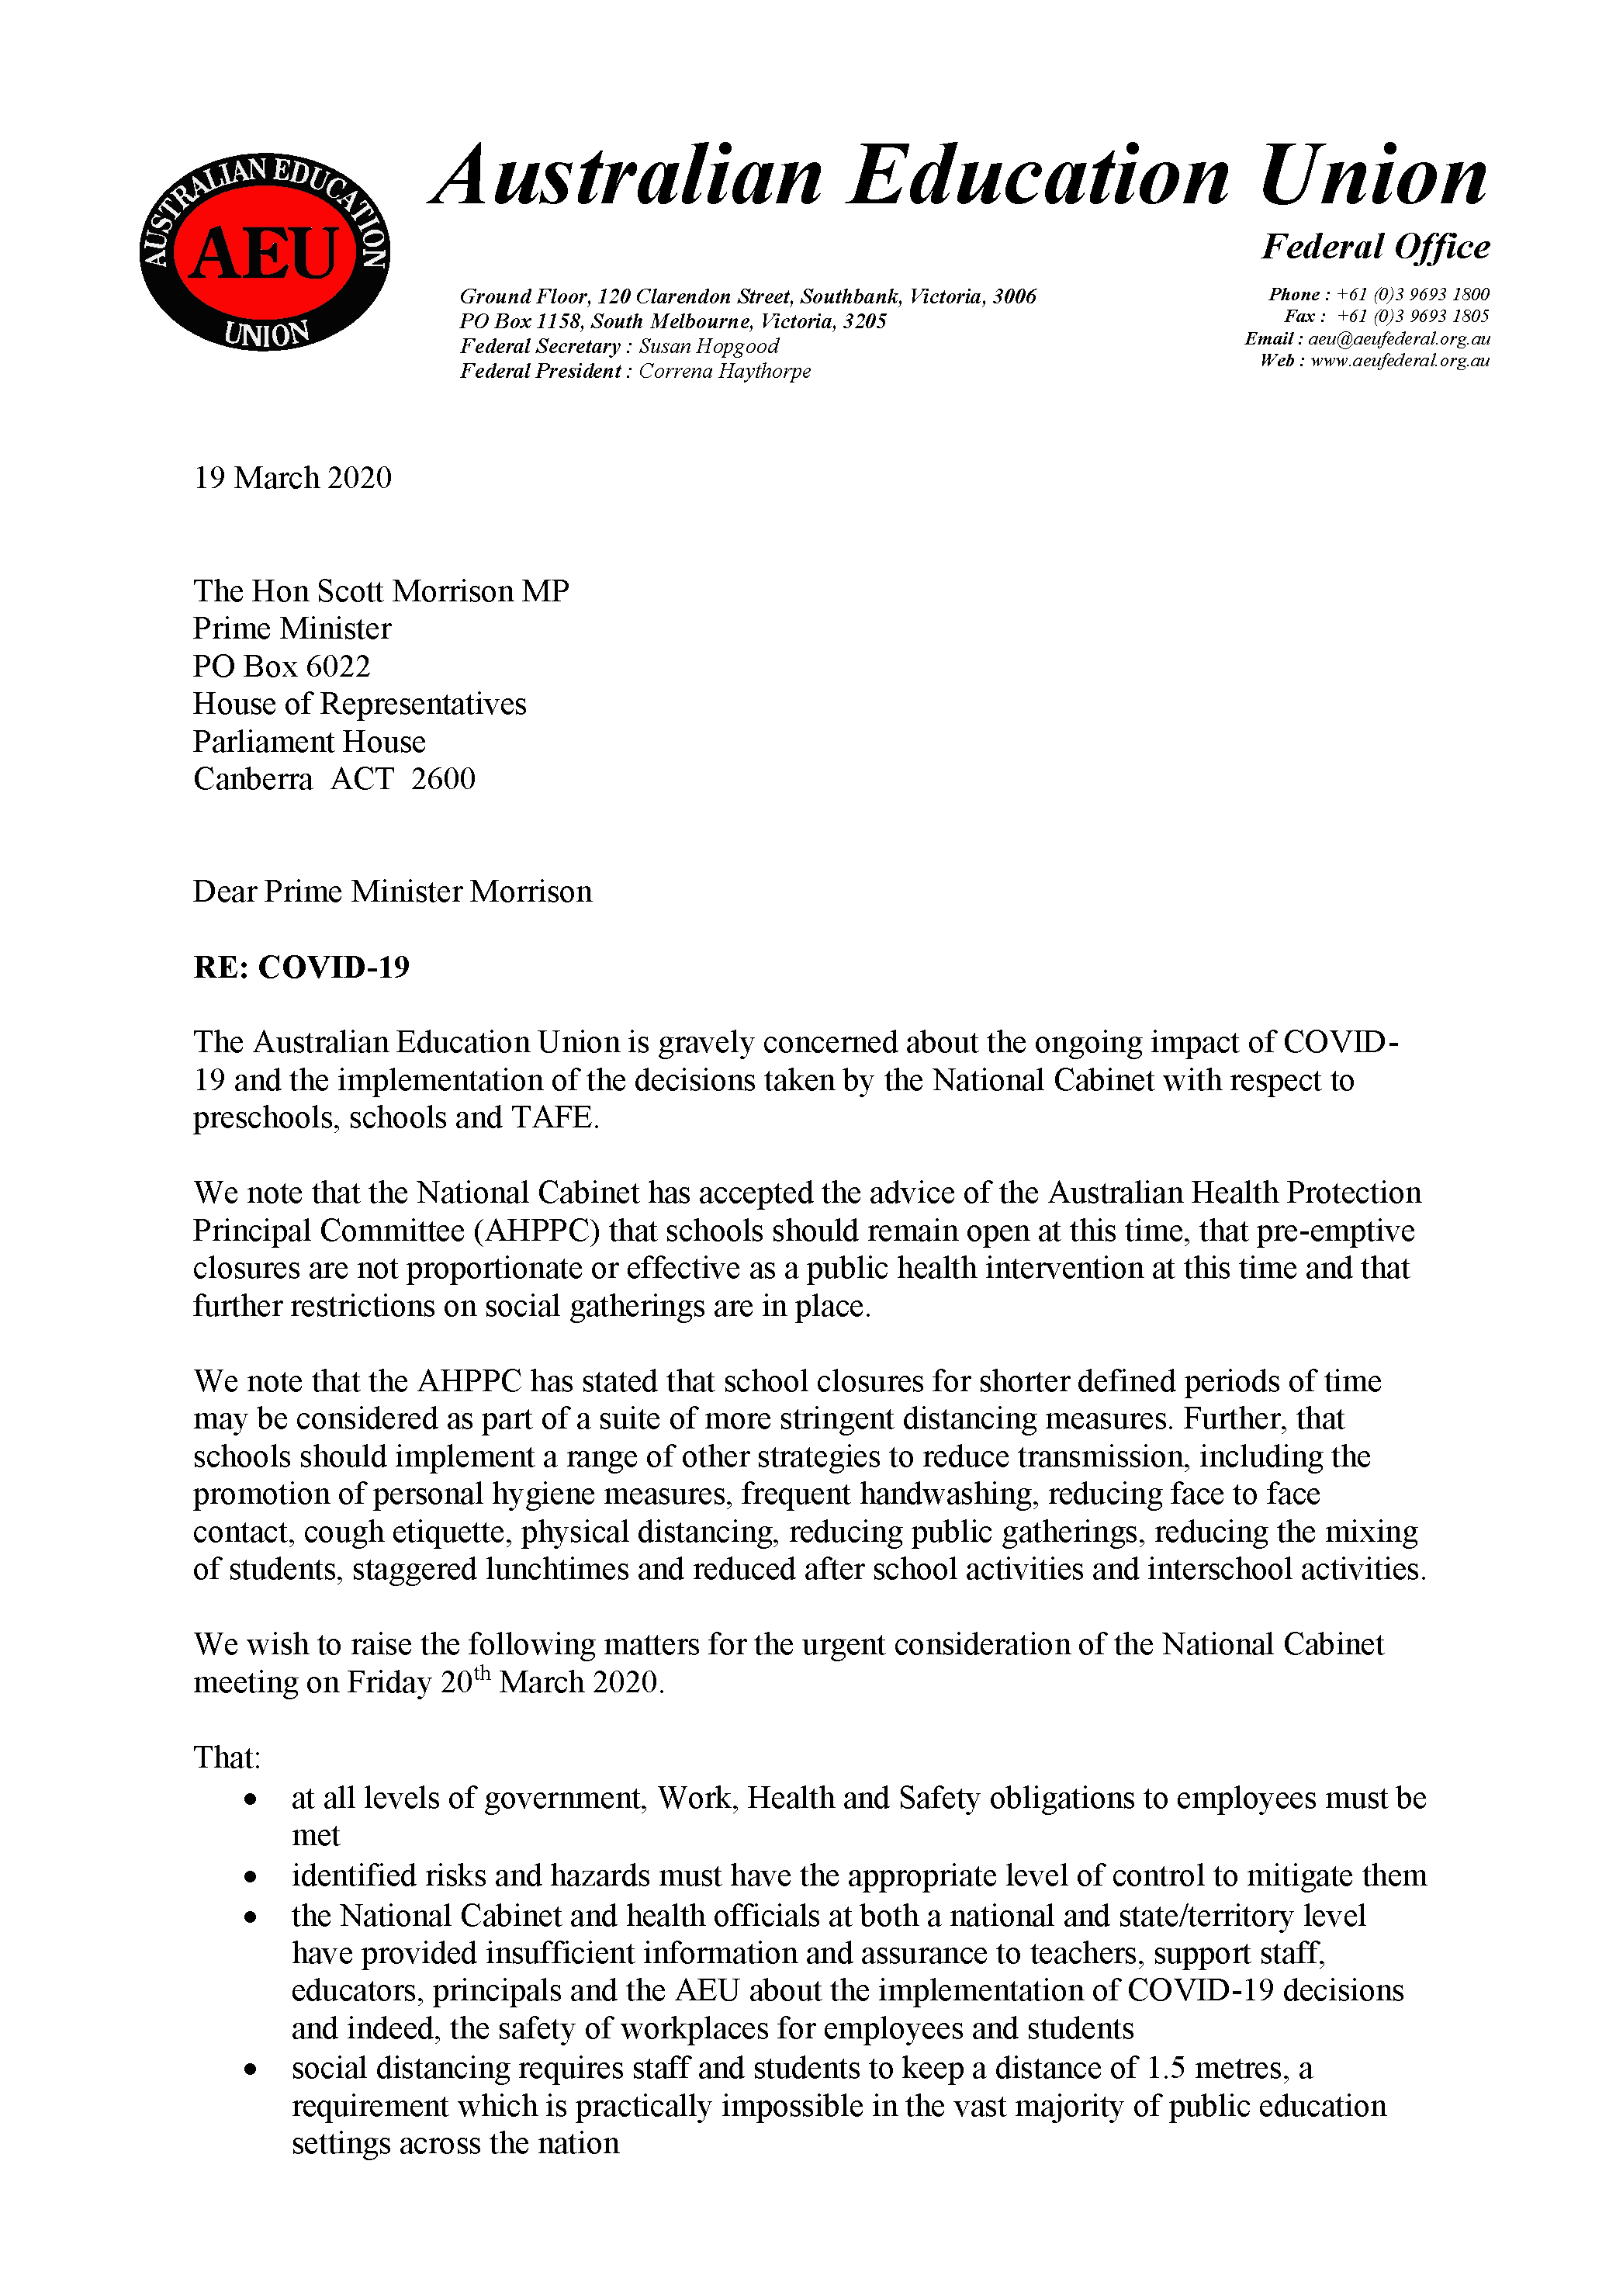 Click image to read AEU joint letter to Prime Minister.